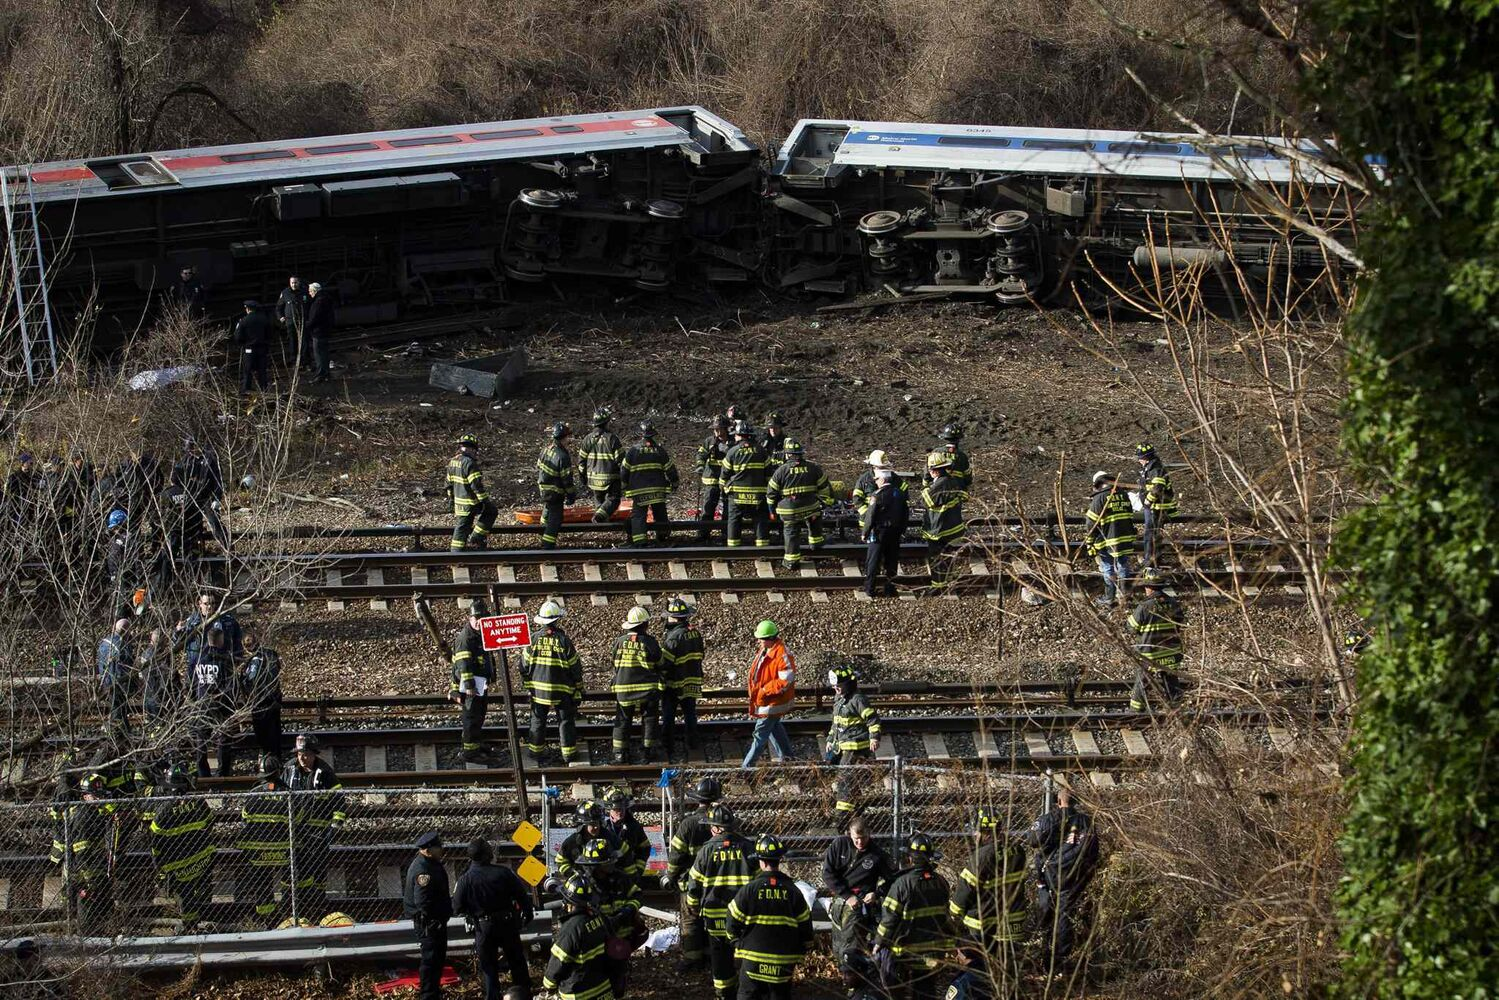 Emergency personnel respond to the scene of a Metro-North passenger train derailment. (John Minchillo / The Associated Press)